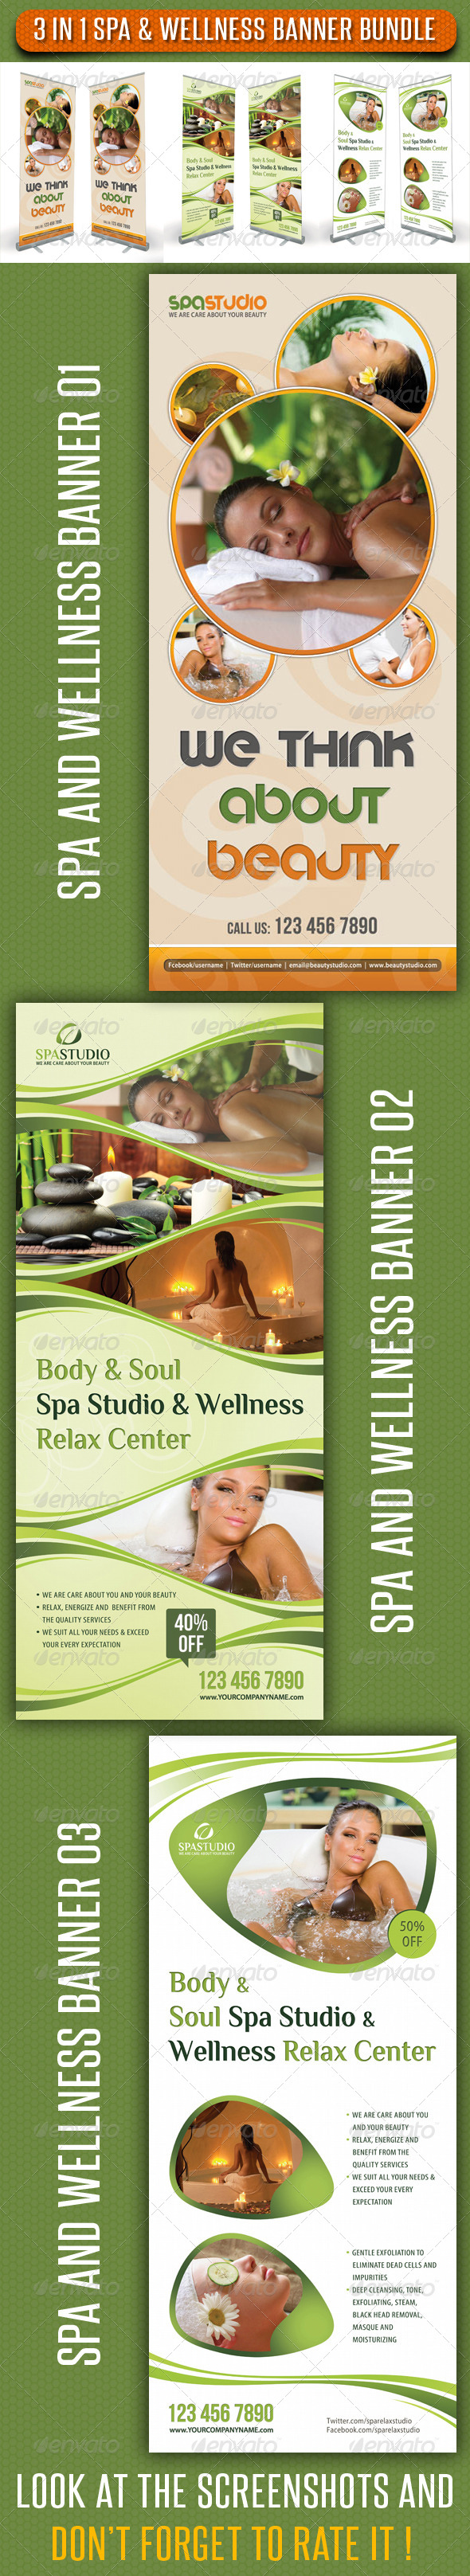 3 in 1 Spa Wellness Banner Bundle 01 - Signage Print Templates